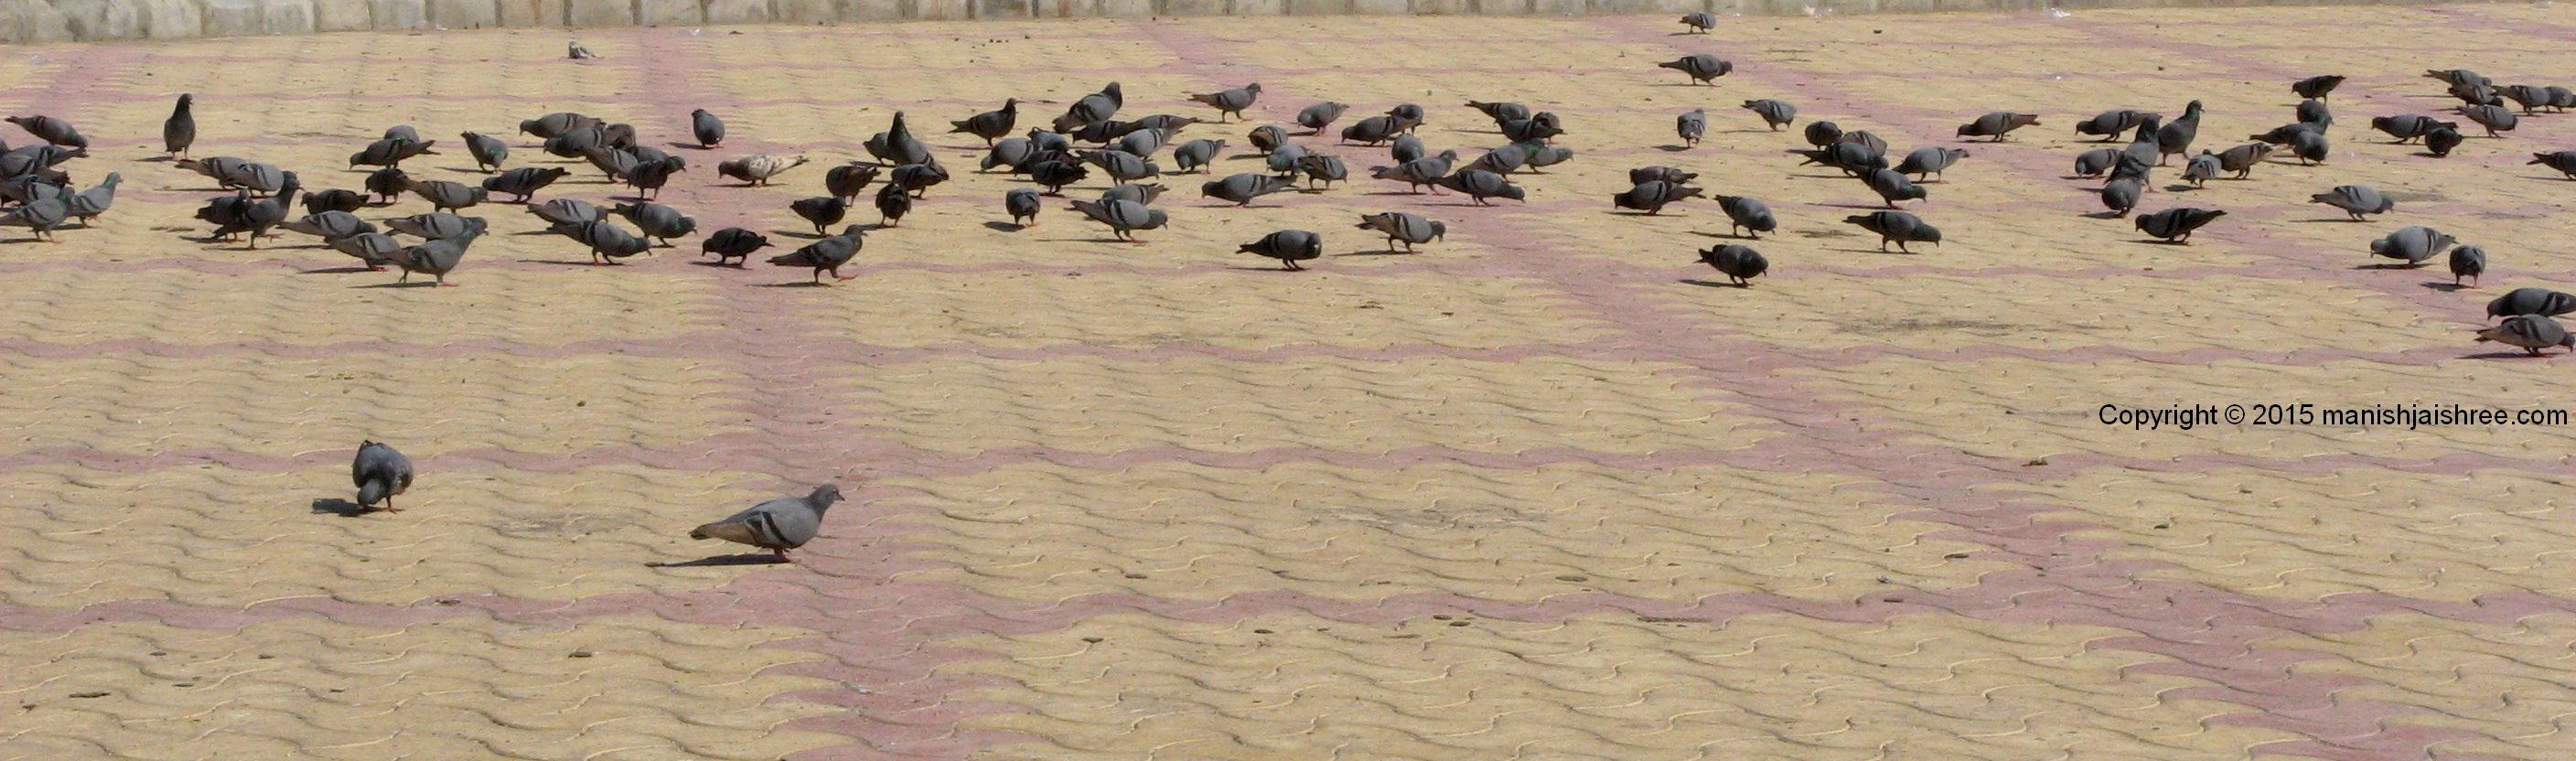 Pigeons in front of Somnath Temple